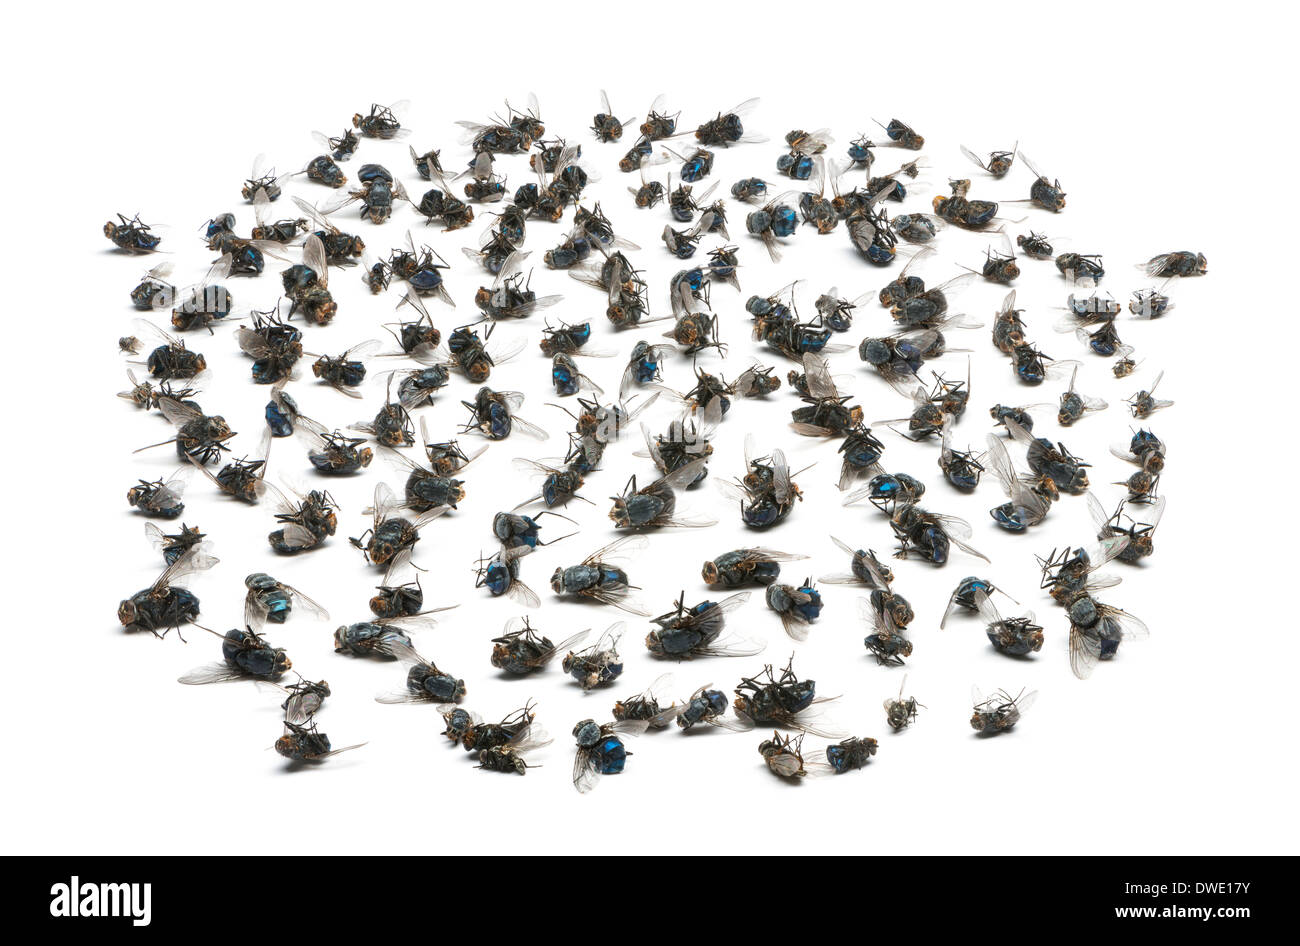 Group of dead flies in front of white background - Stock Image